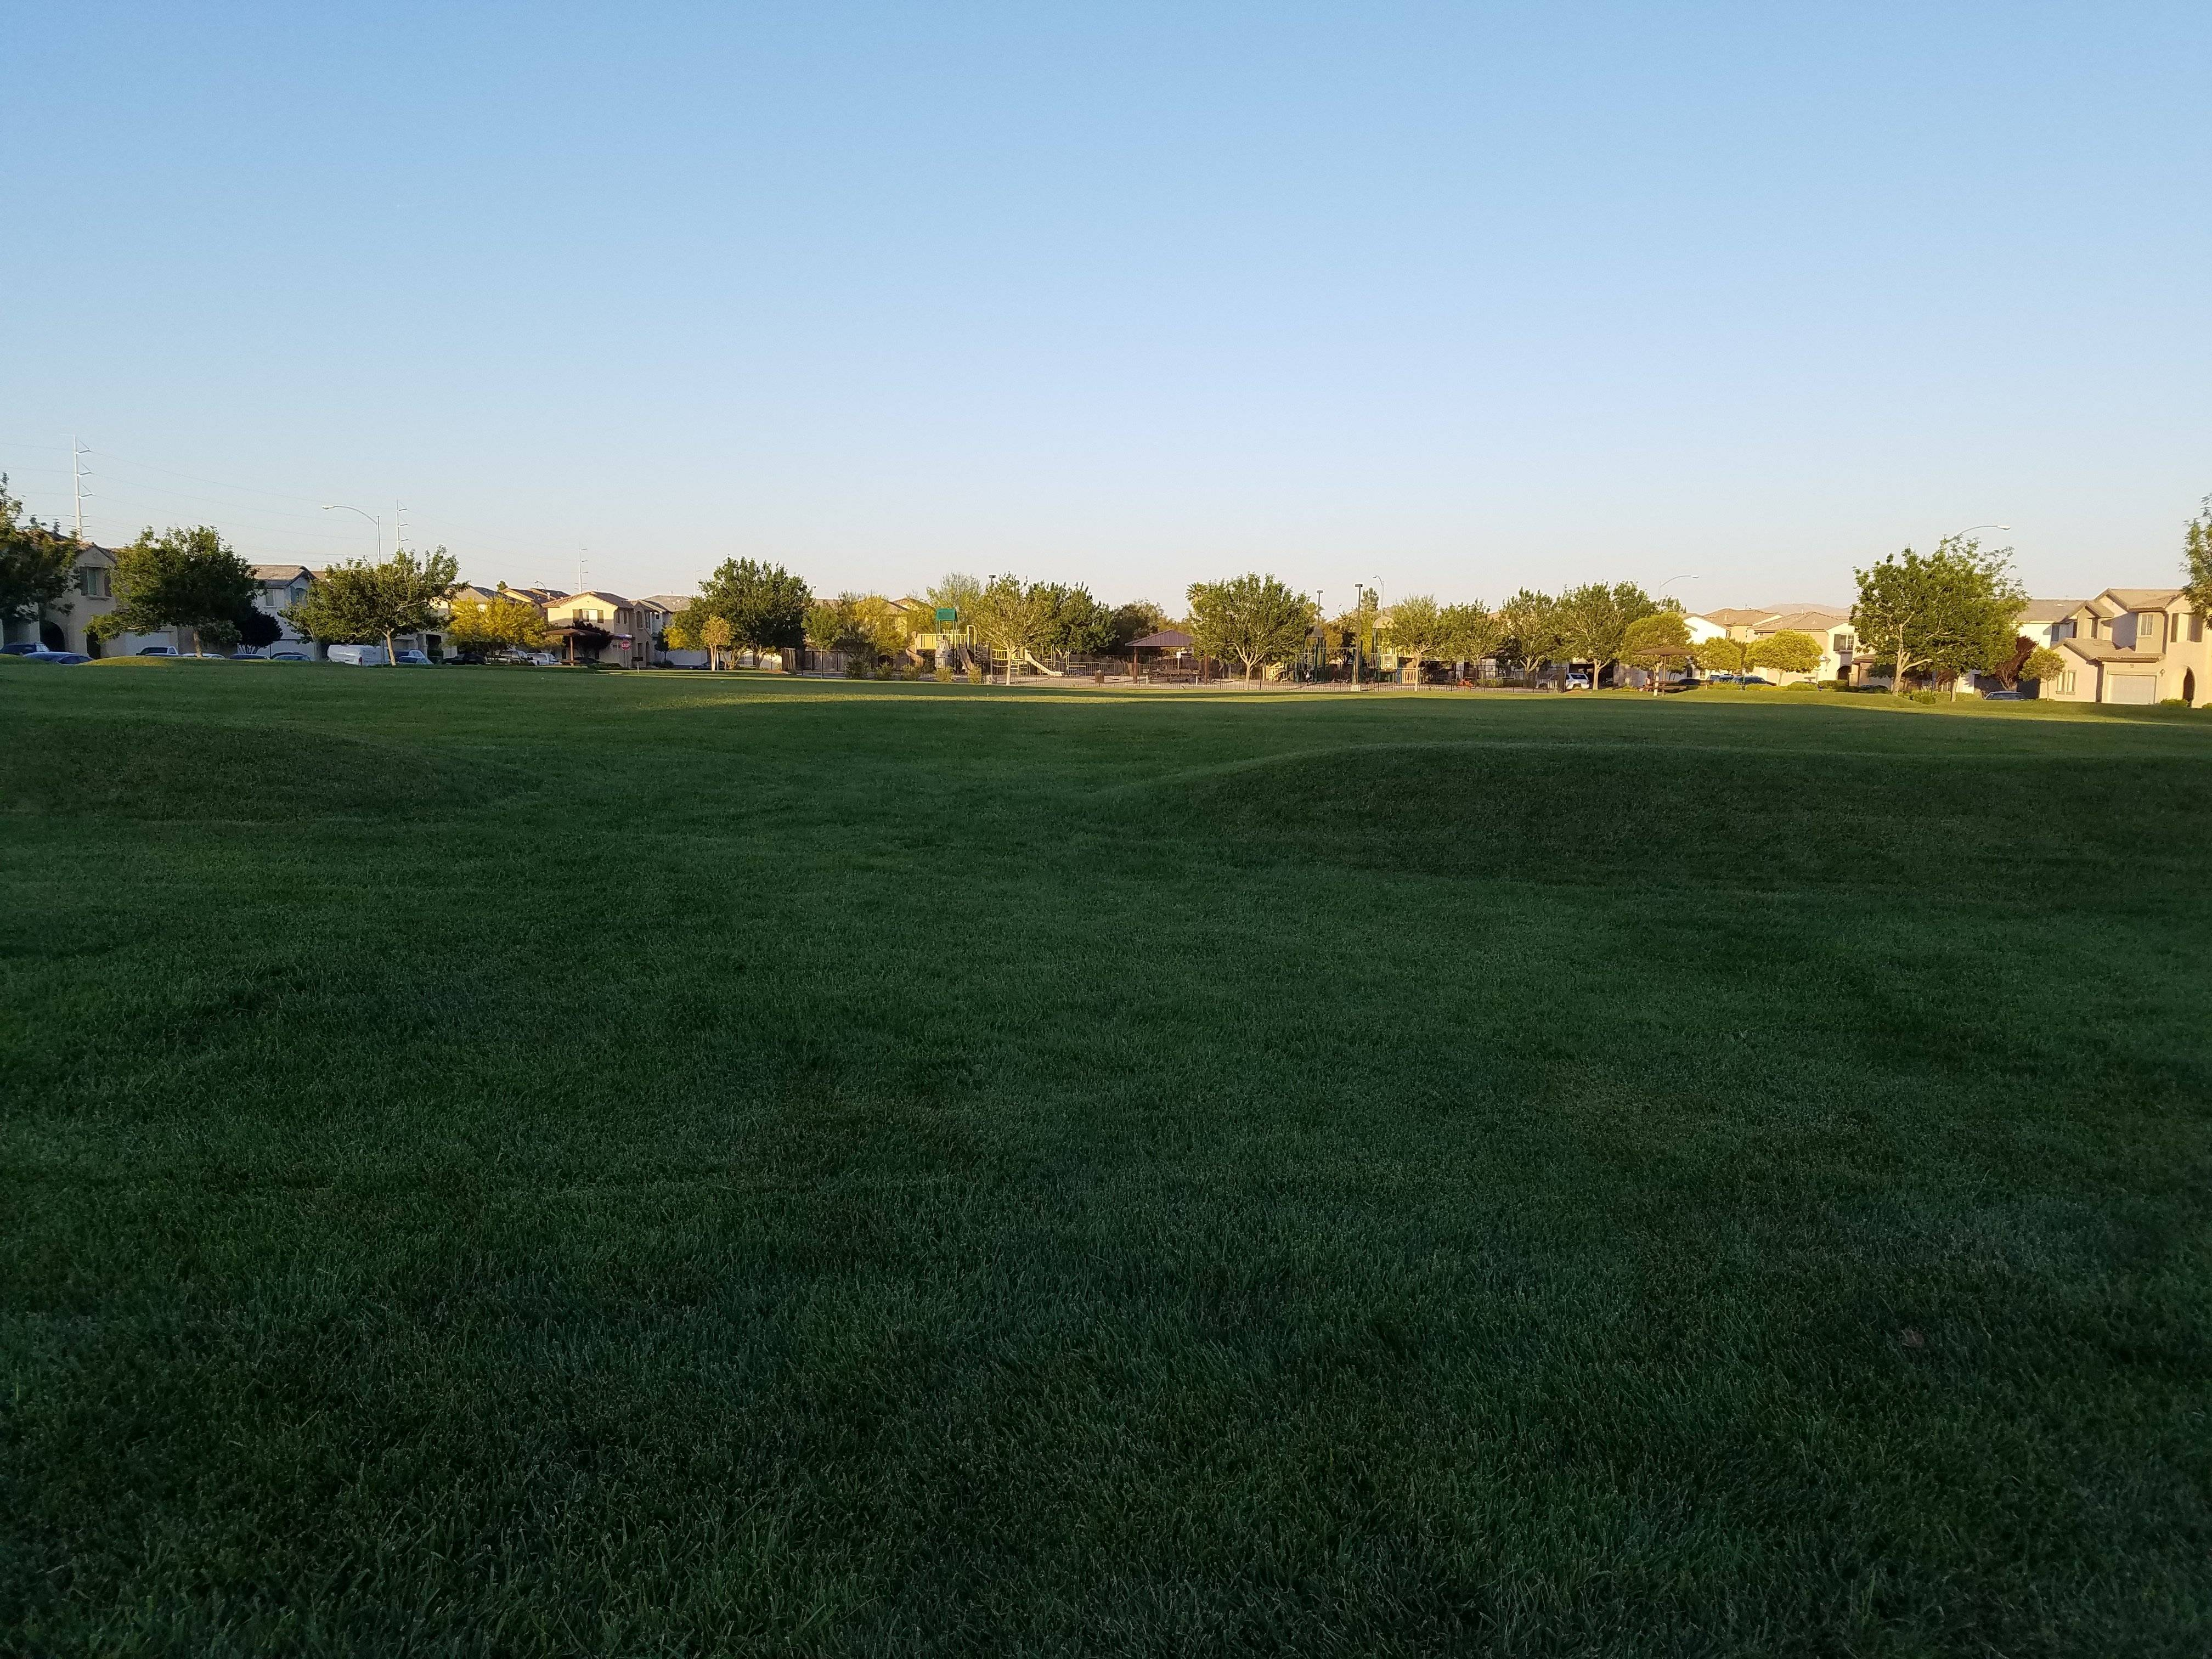 Real grass, lots of space...nice park!